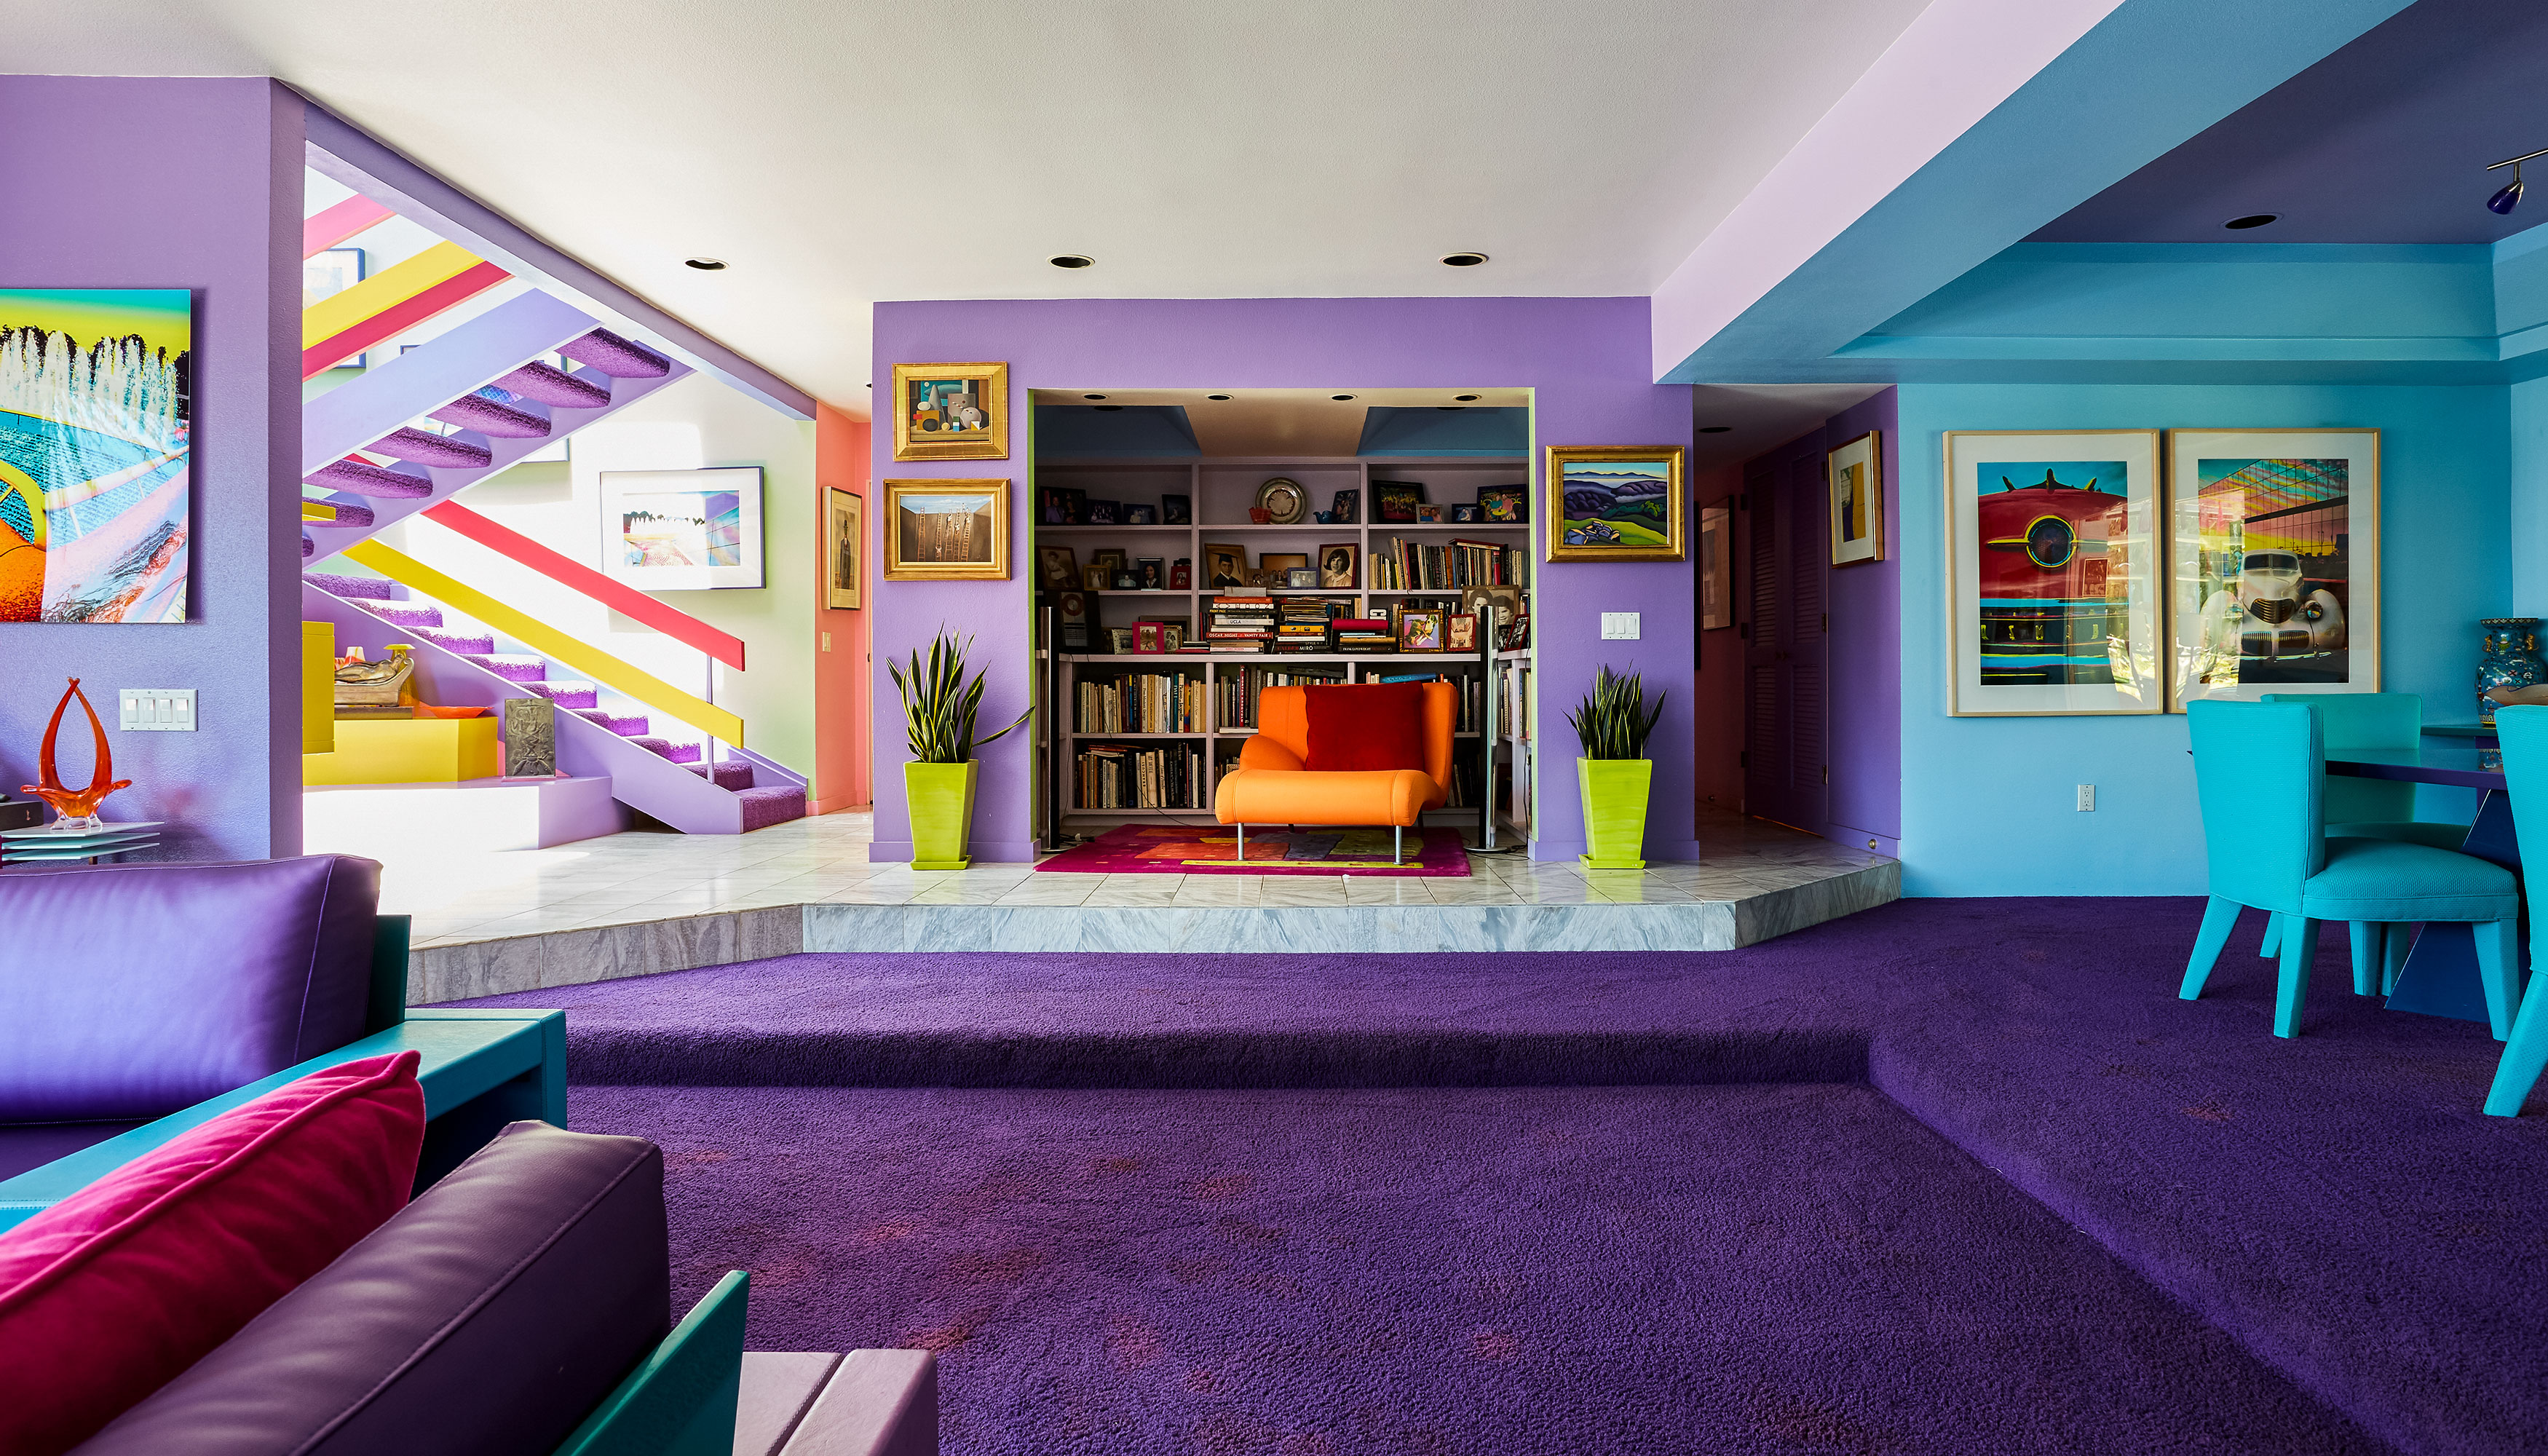 Jane Gottlieb's colorful living room with purple carpet, purple walls, and colorful artwork on the walls